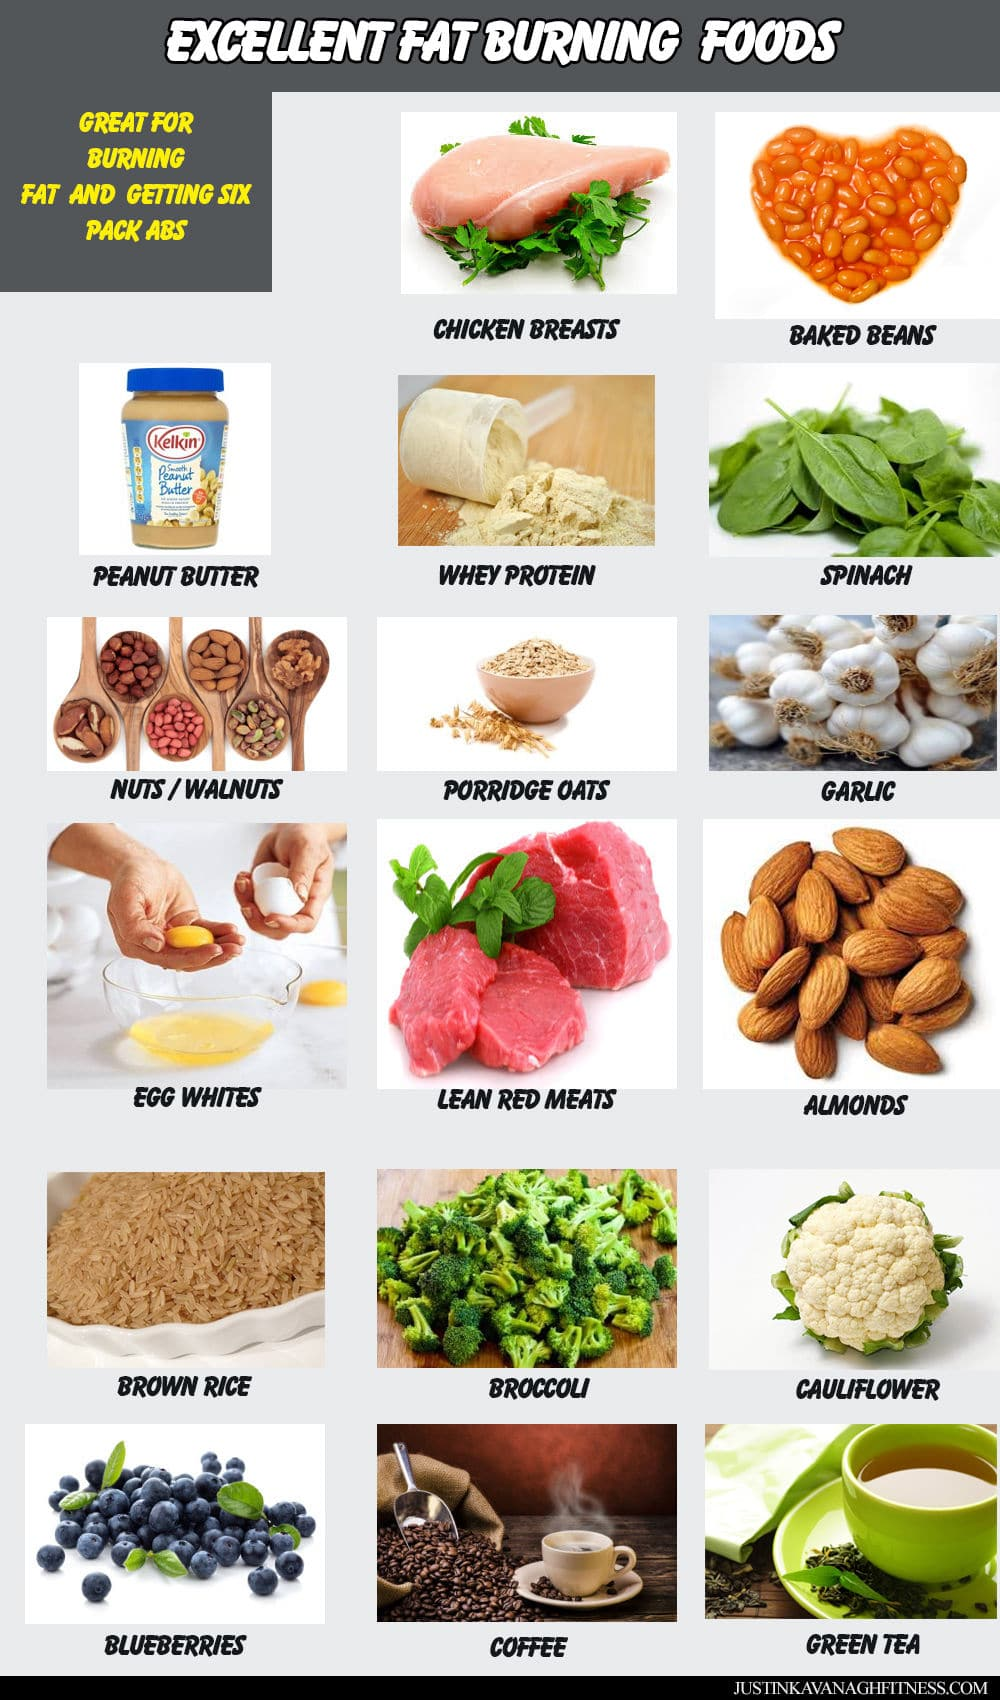 Excellent Fat Burning Foods